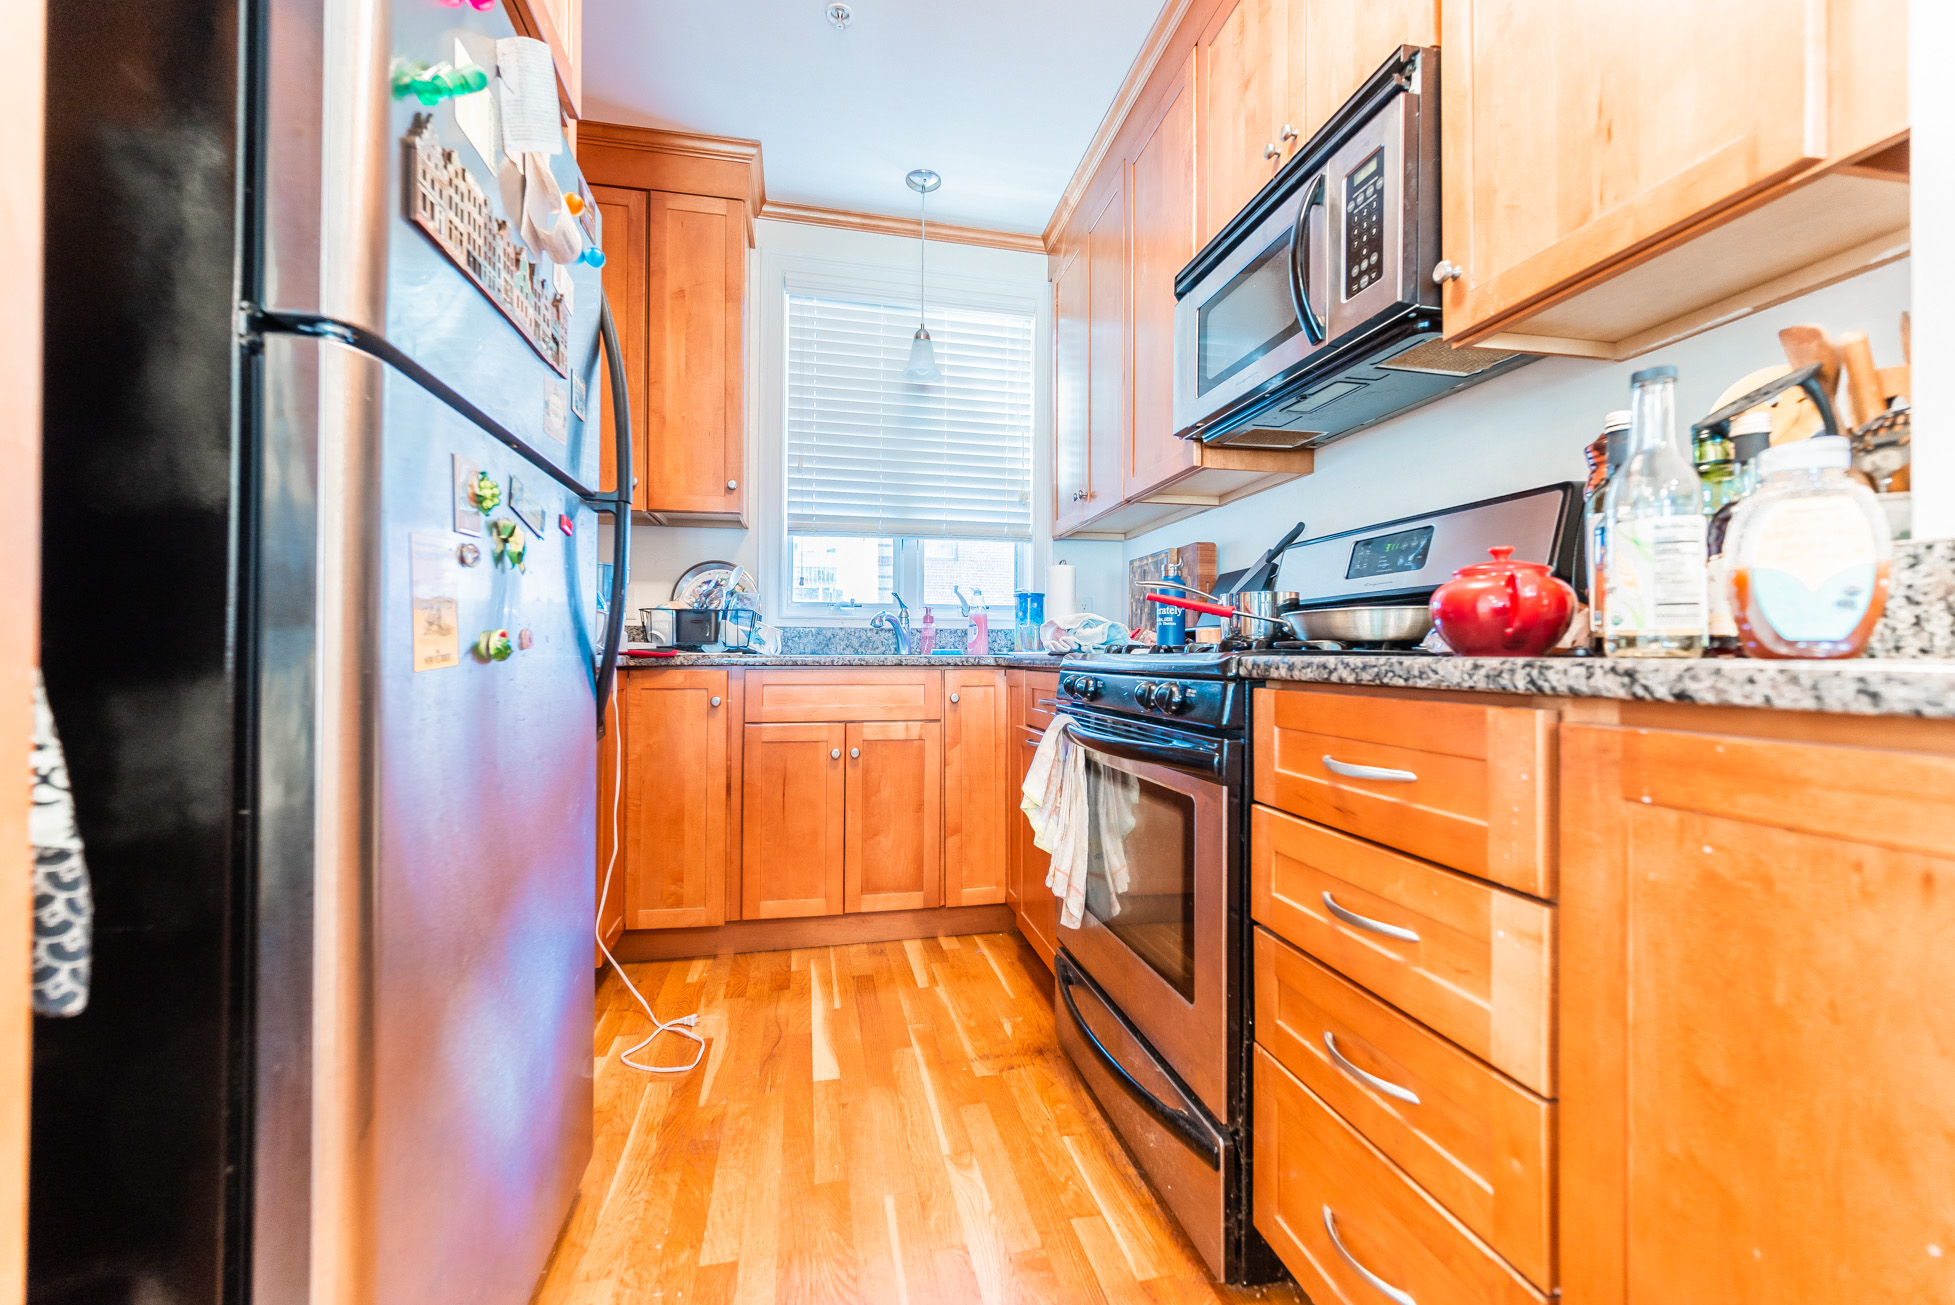 2 Beds, 1.5 Baths apartment in Boston, Mission Hill for $3,200